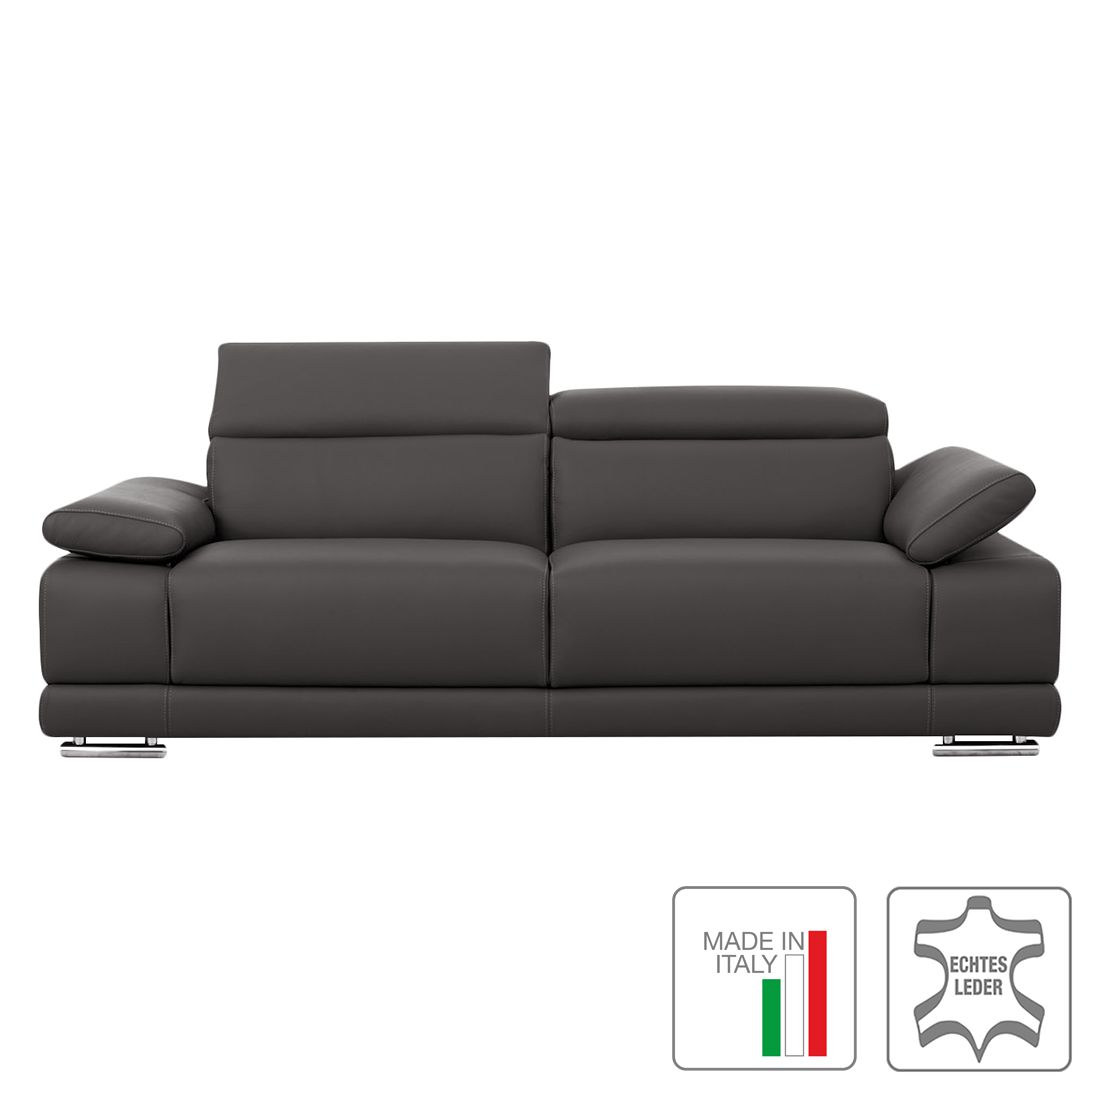 sofa morfeo 3 sitzer echtleder dunkelgrau trend italiano g nstig bestellen. Black Bedroom Furniture Sets. Home Design Ideas